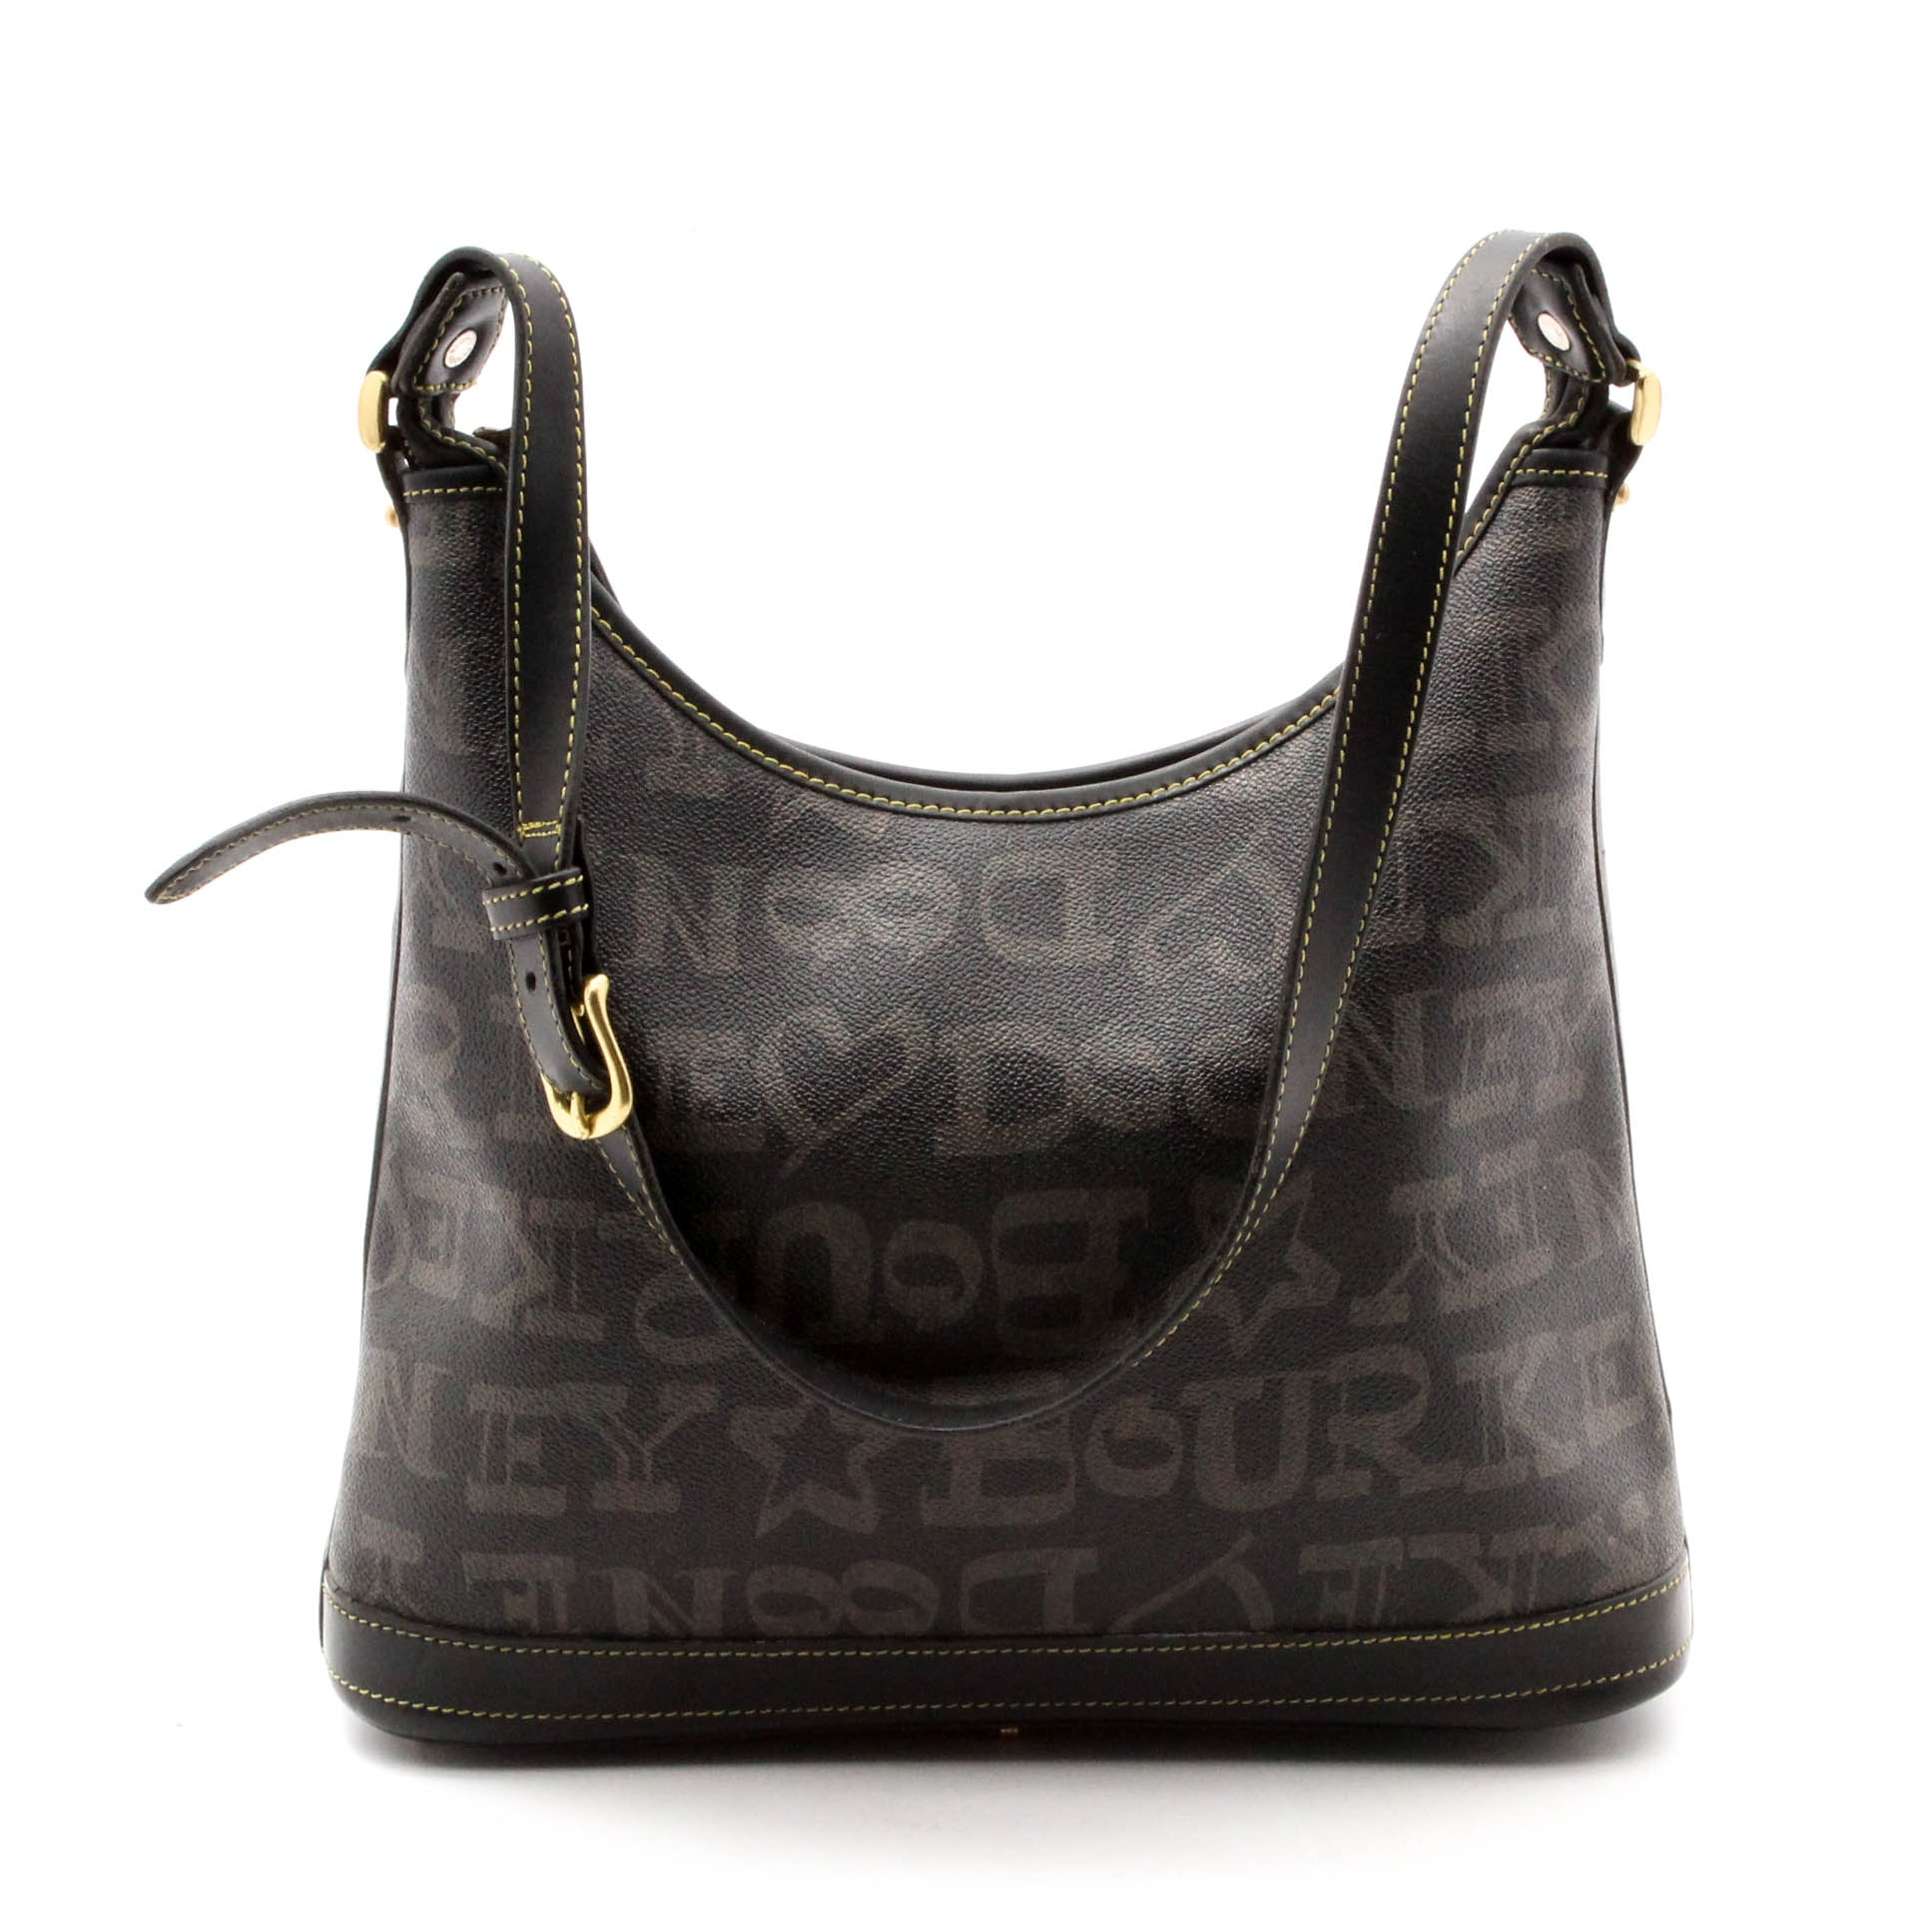 Dooney & Bourke Black Scribble Monogram Coated Canvas and Leather Shoulder Bag